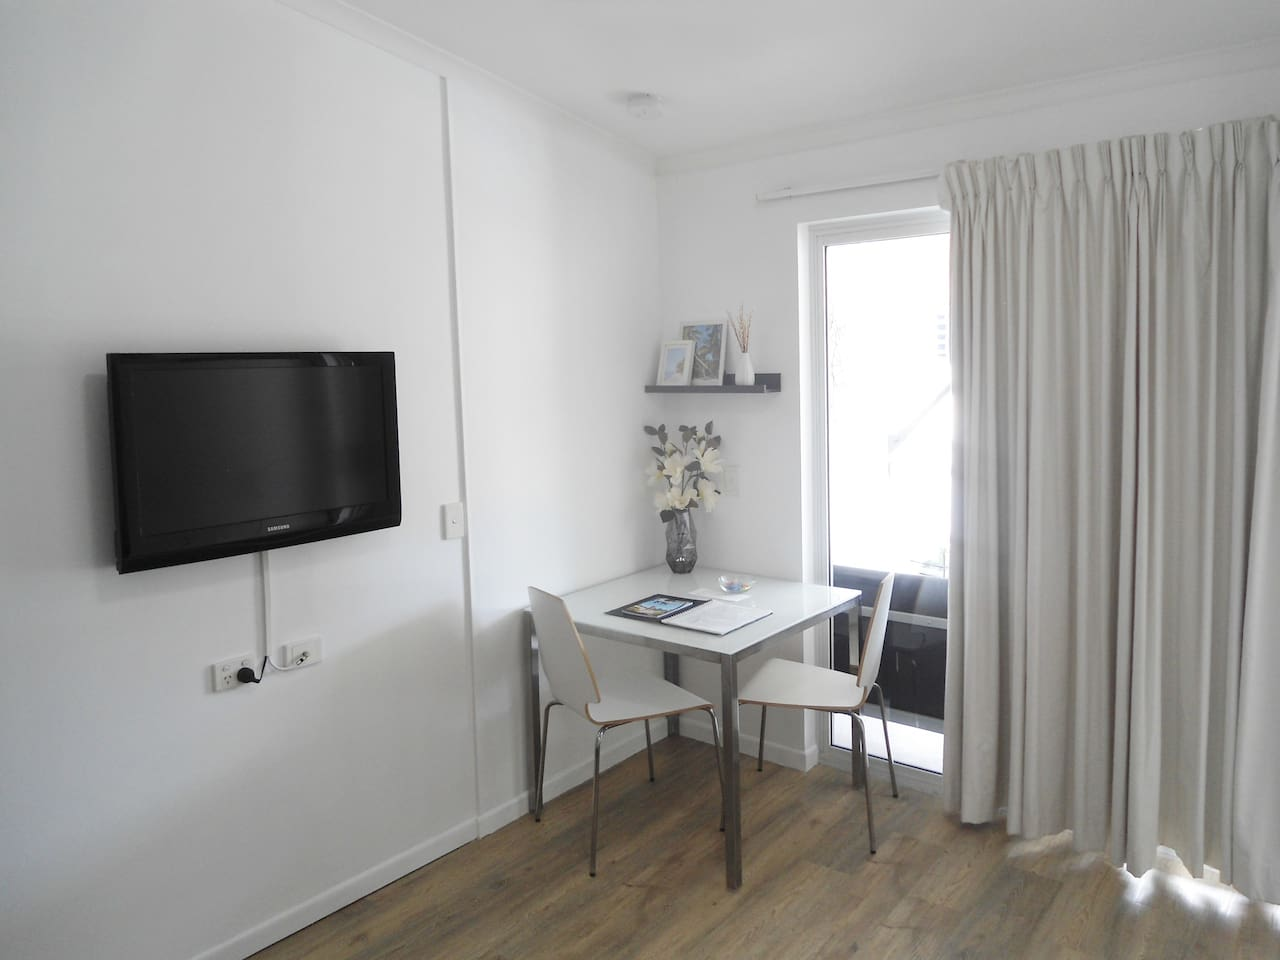 Studio with double bed, wardrobe, table, TV